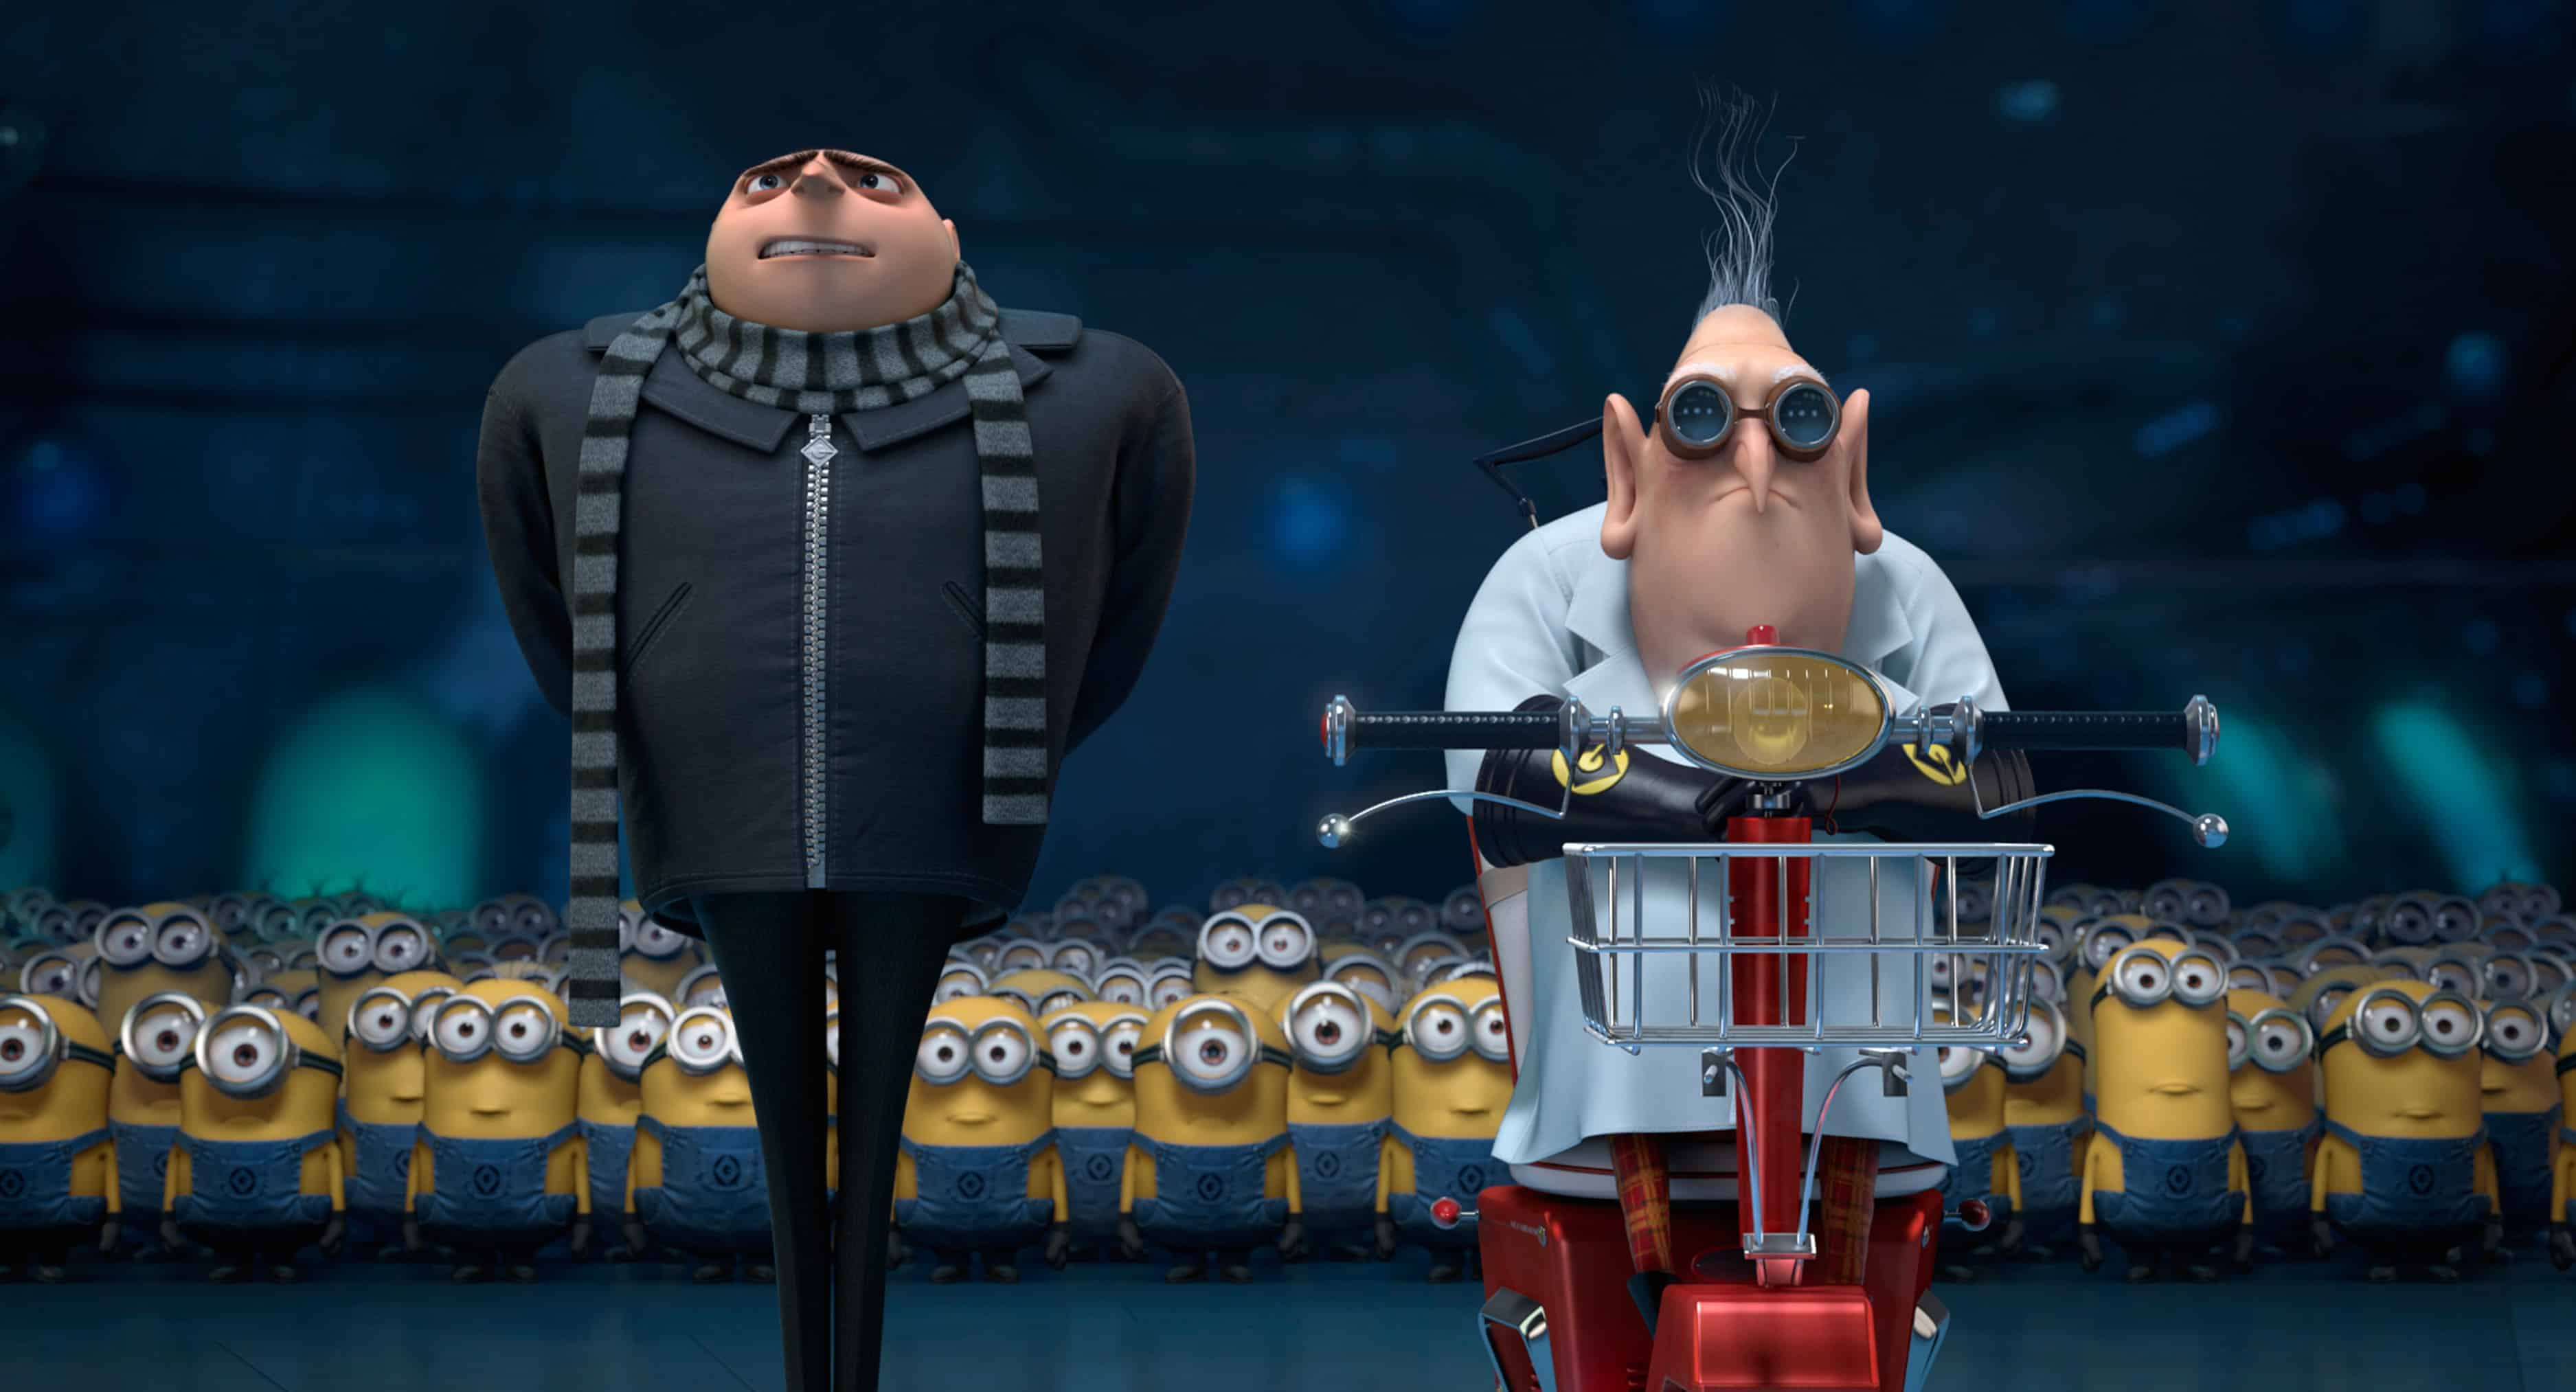 Minions, unite! These 7 Despicable Me 3 movie quotes will make you want to join Gru for a walk on the dark side! Check them out!